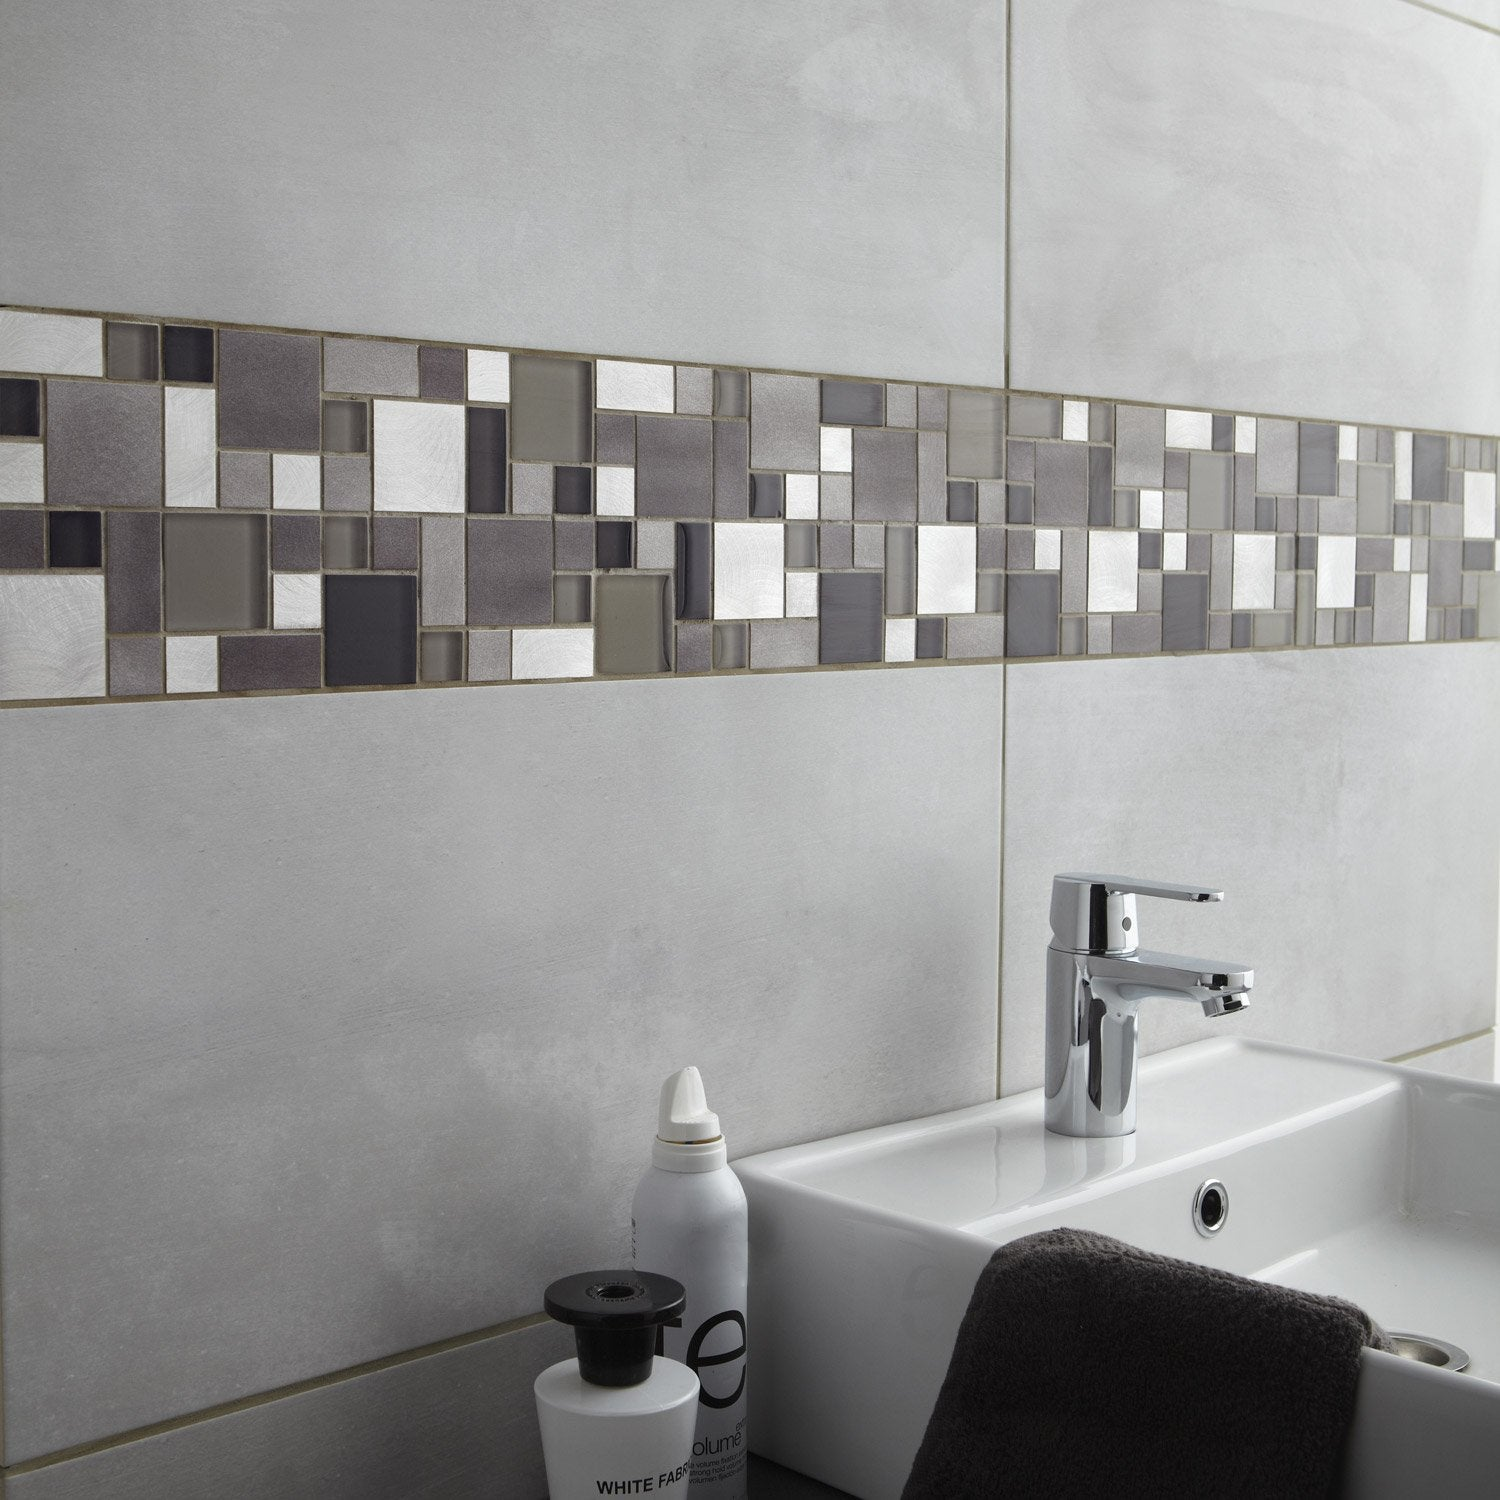 Fa ence mur gris clair denver x cm leroy merlin for Carrelage salle de bain gris brillant